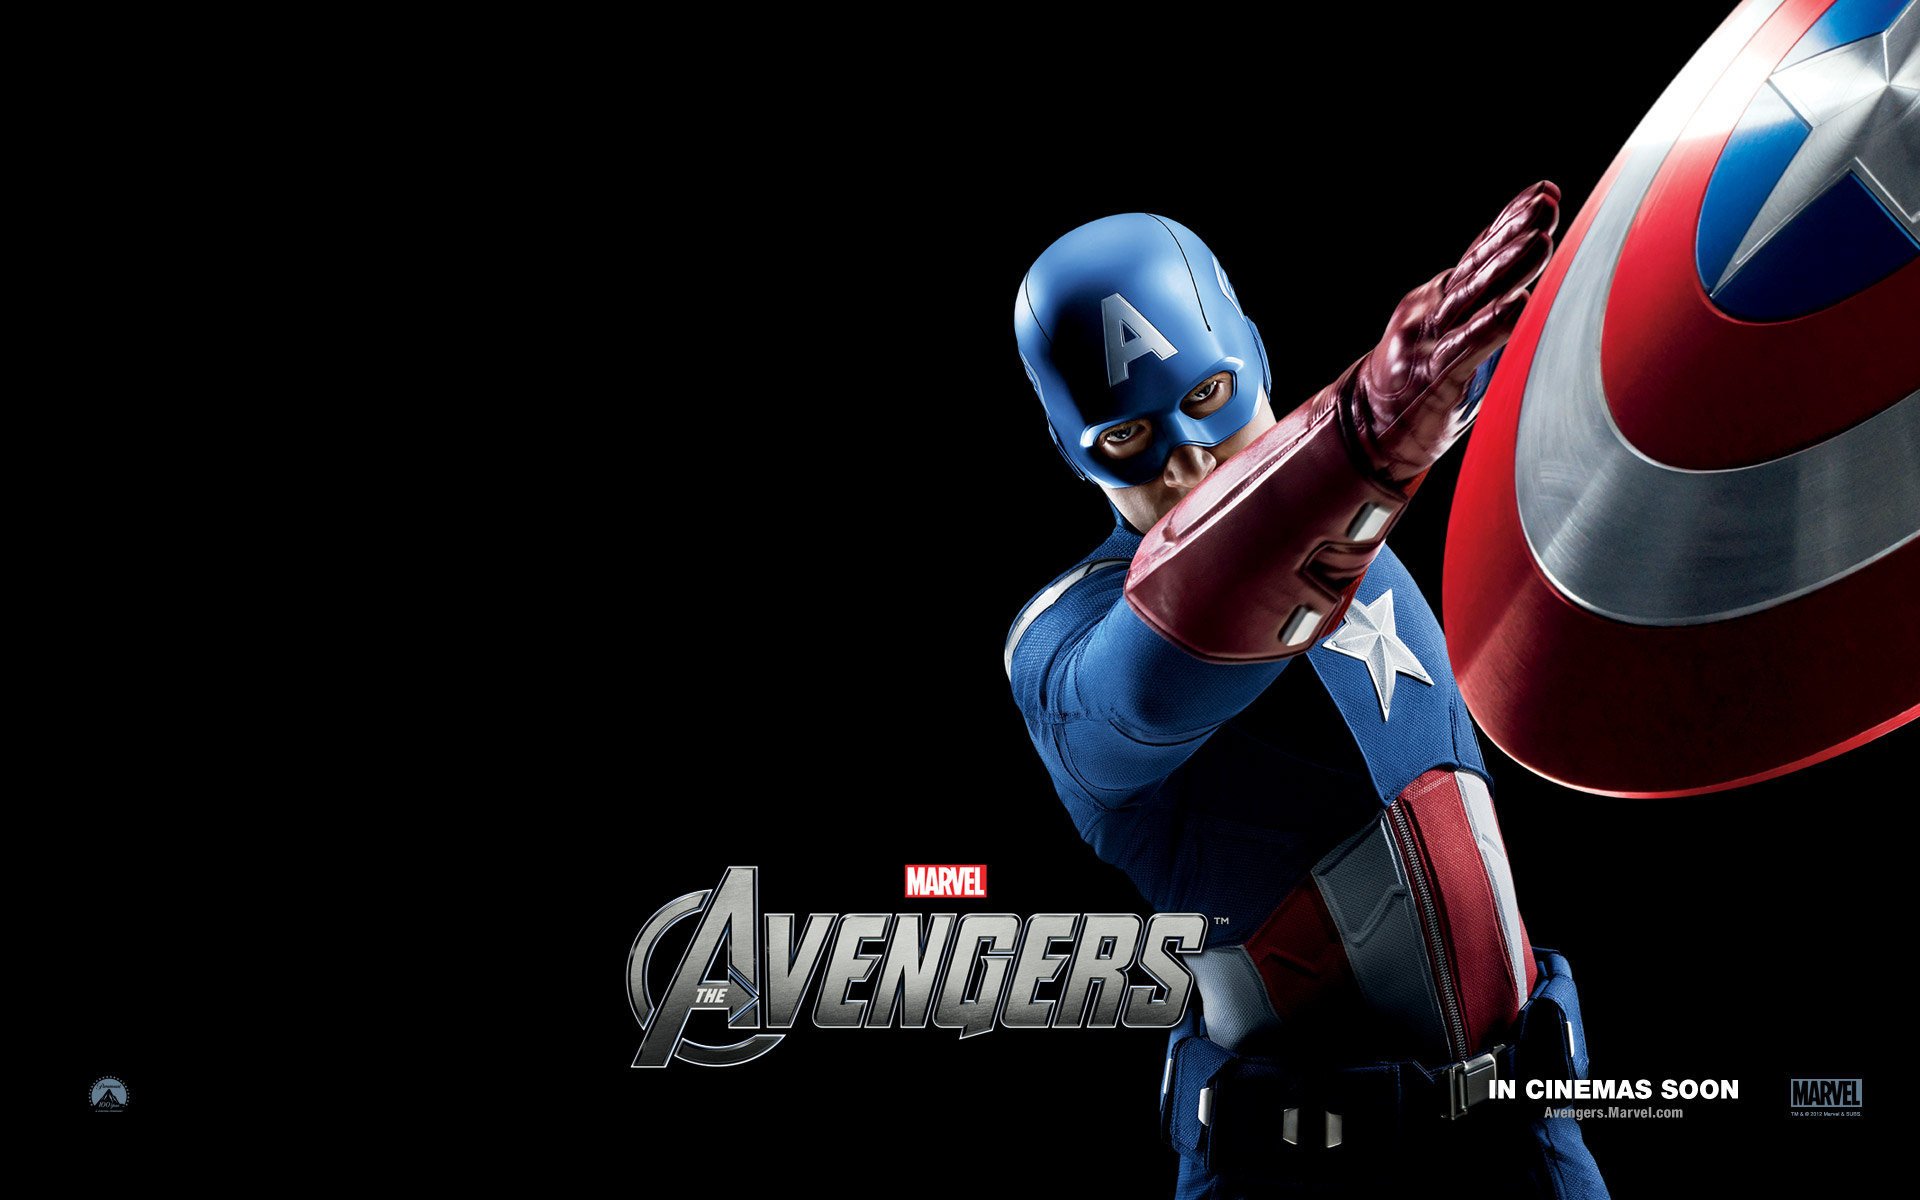 Download Cool Hd Avengers Cartoon Wallpaper For Desktop 1920x1200